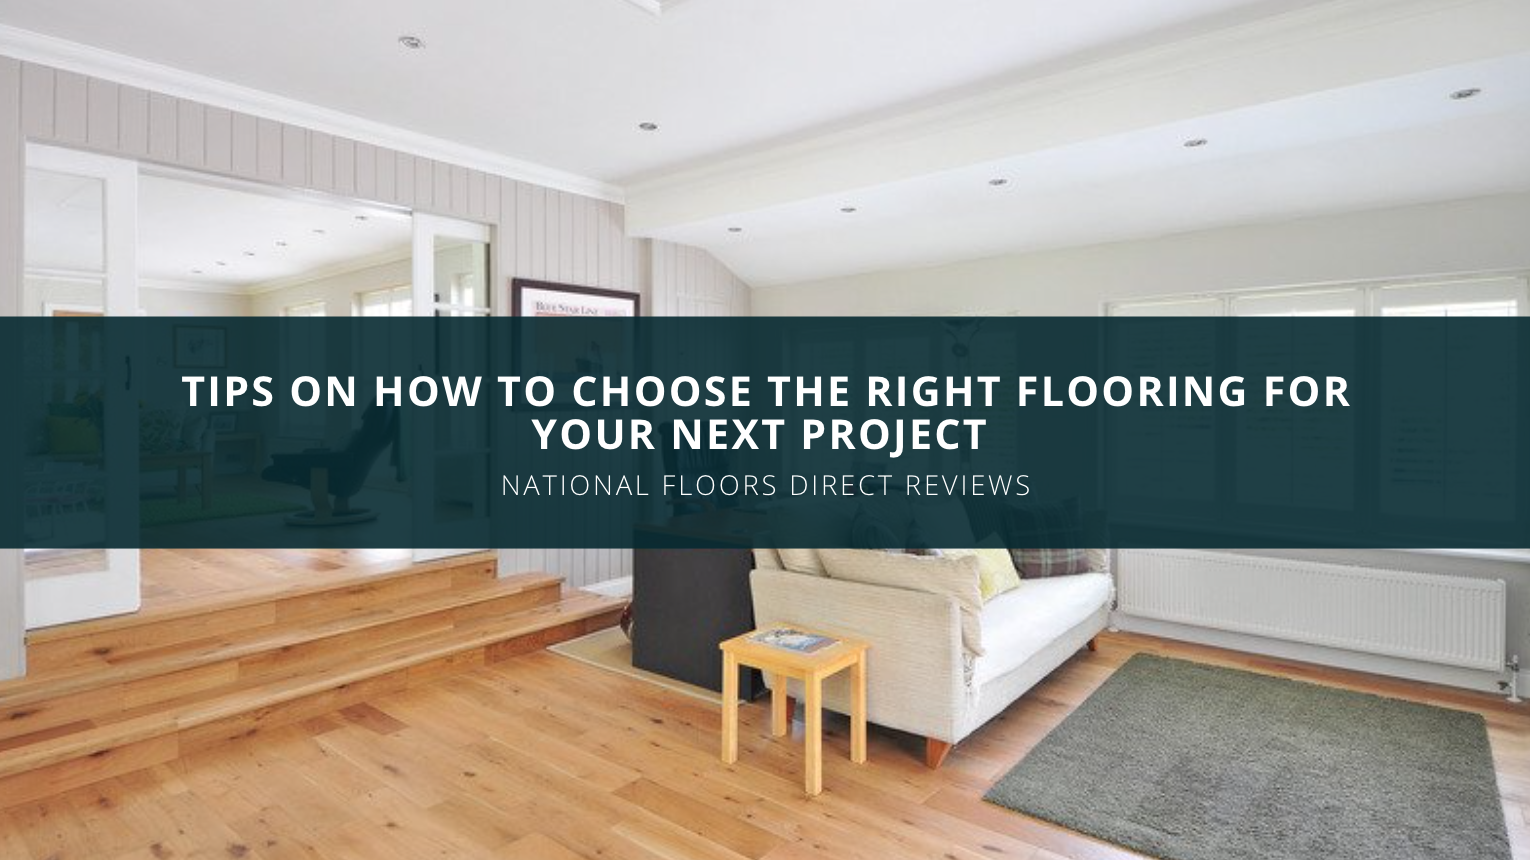 National Floors Direct Reviews Provides Tips on How to Choose the Right Flooring for Your Next Project